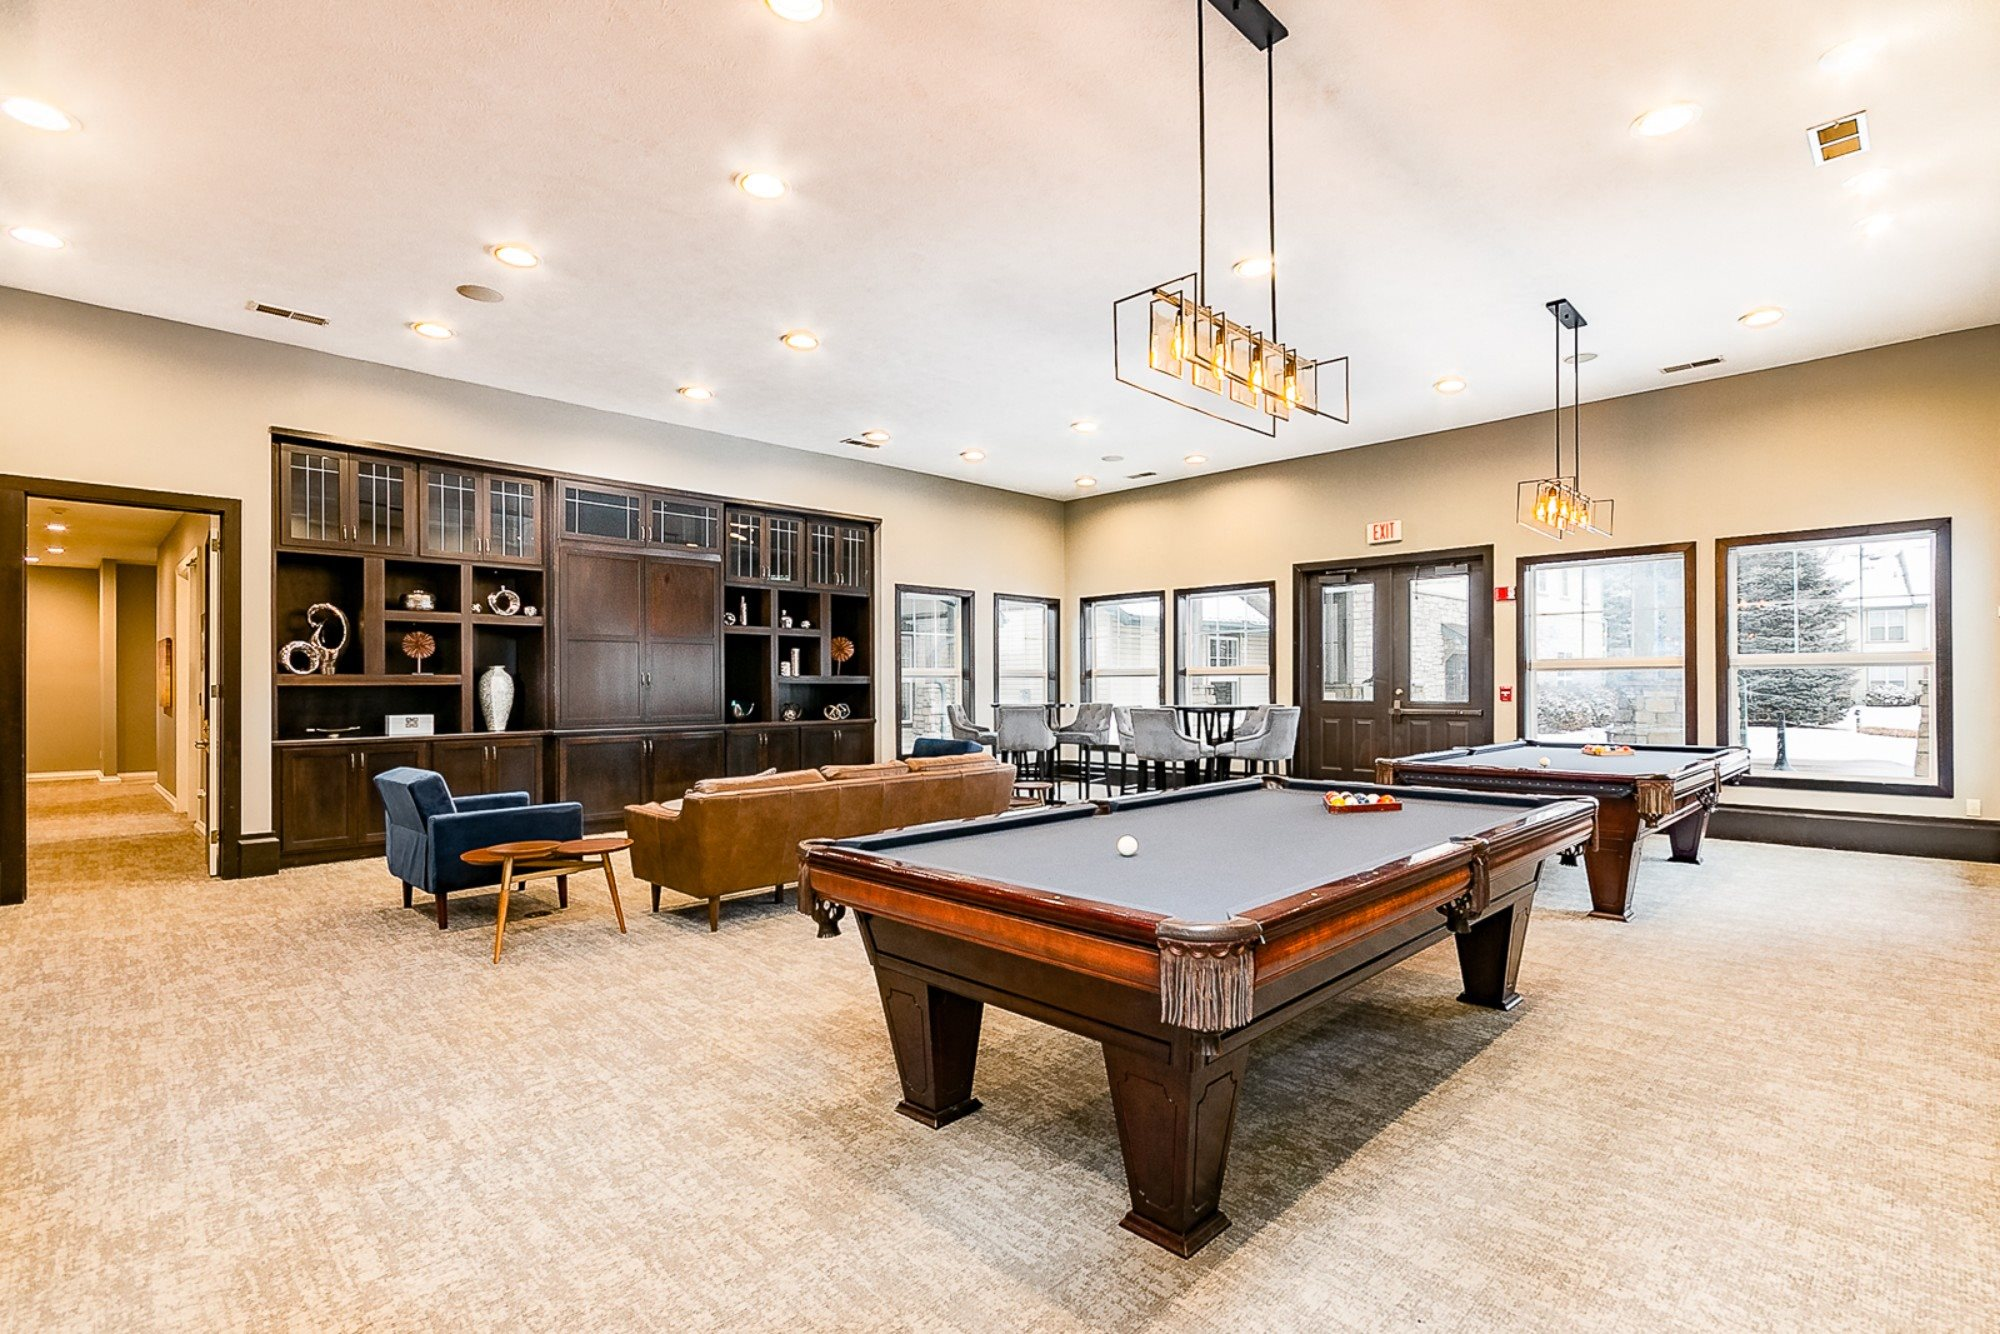 Billiards Lounge at Main Street Village Apartments, Granger, IN, 46530